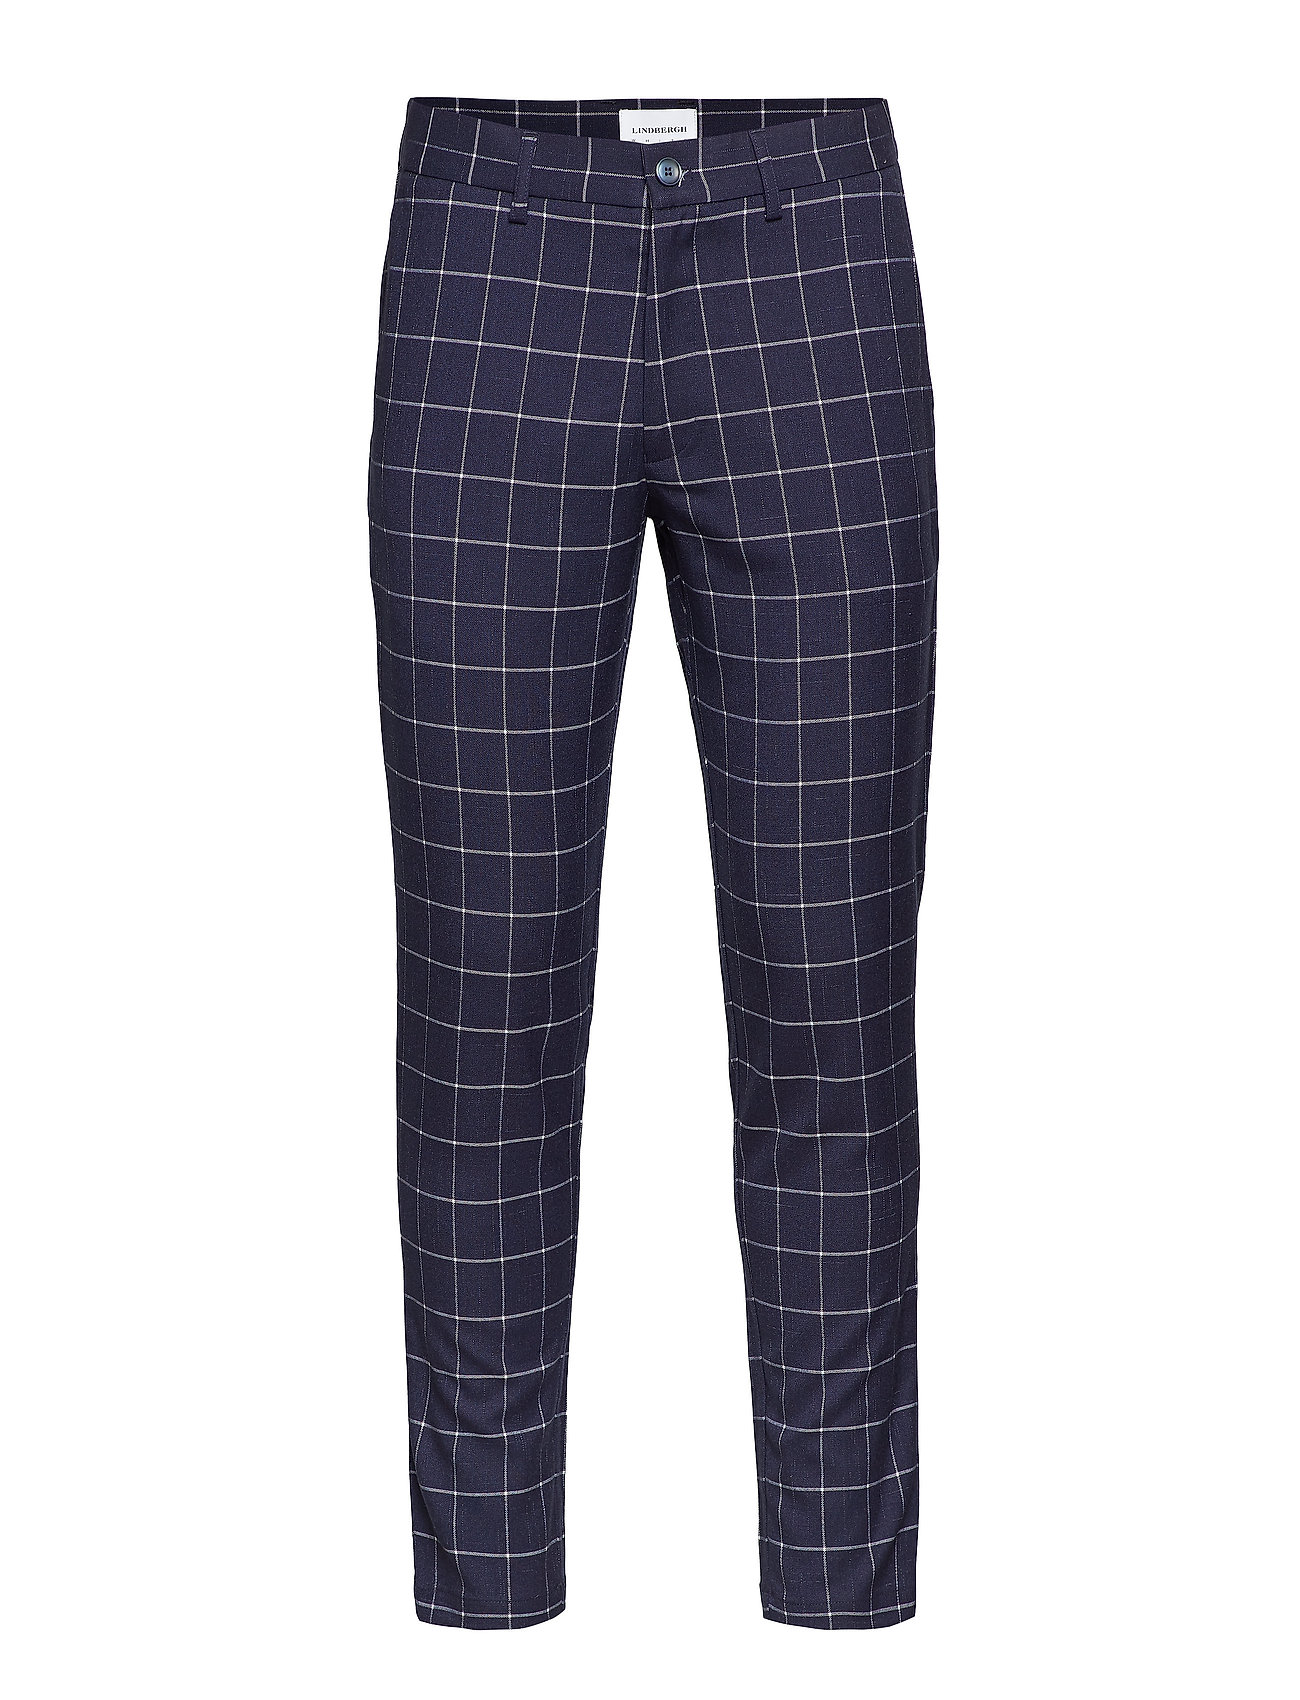 Checkeddk Pants Club Pants Club BlueLindbergh 5RLj34A